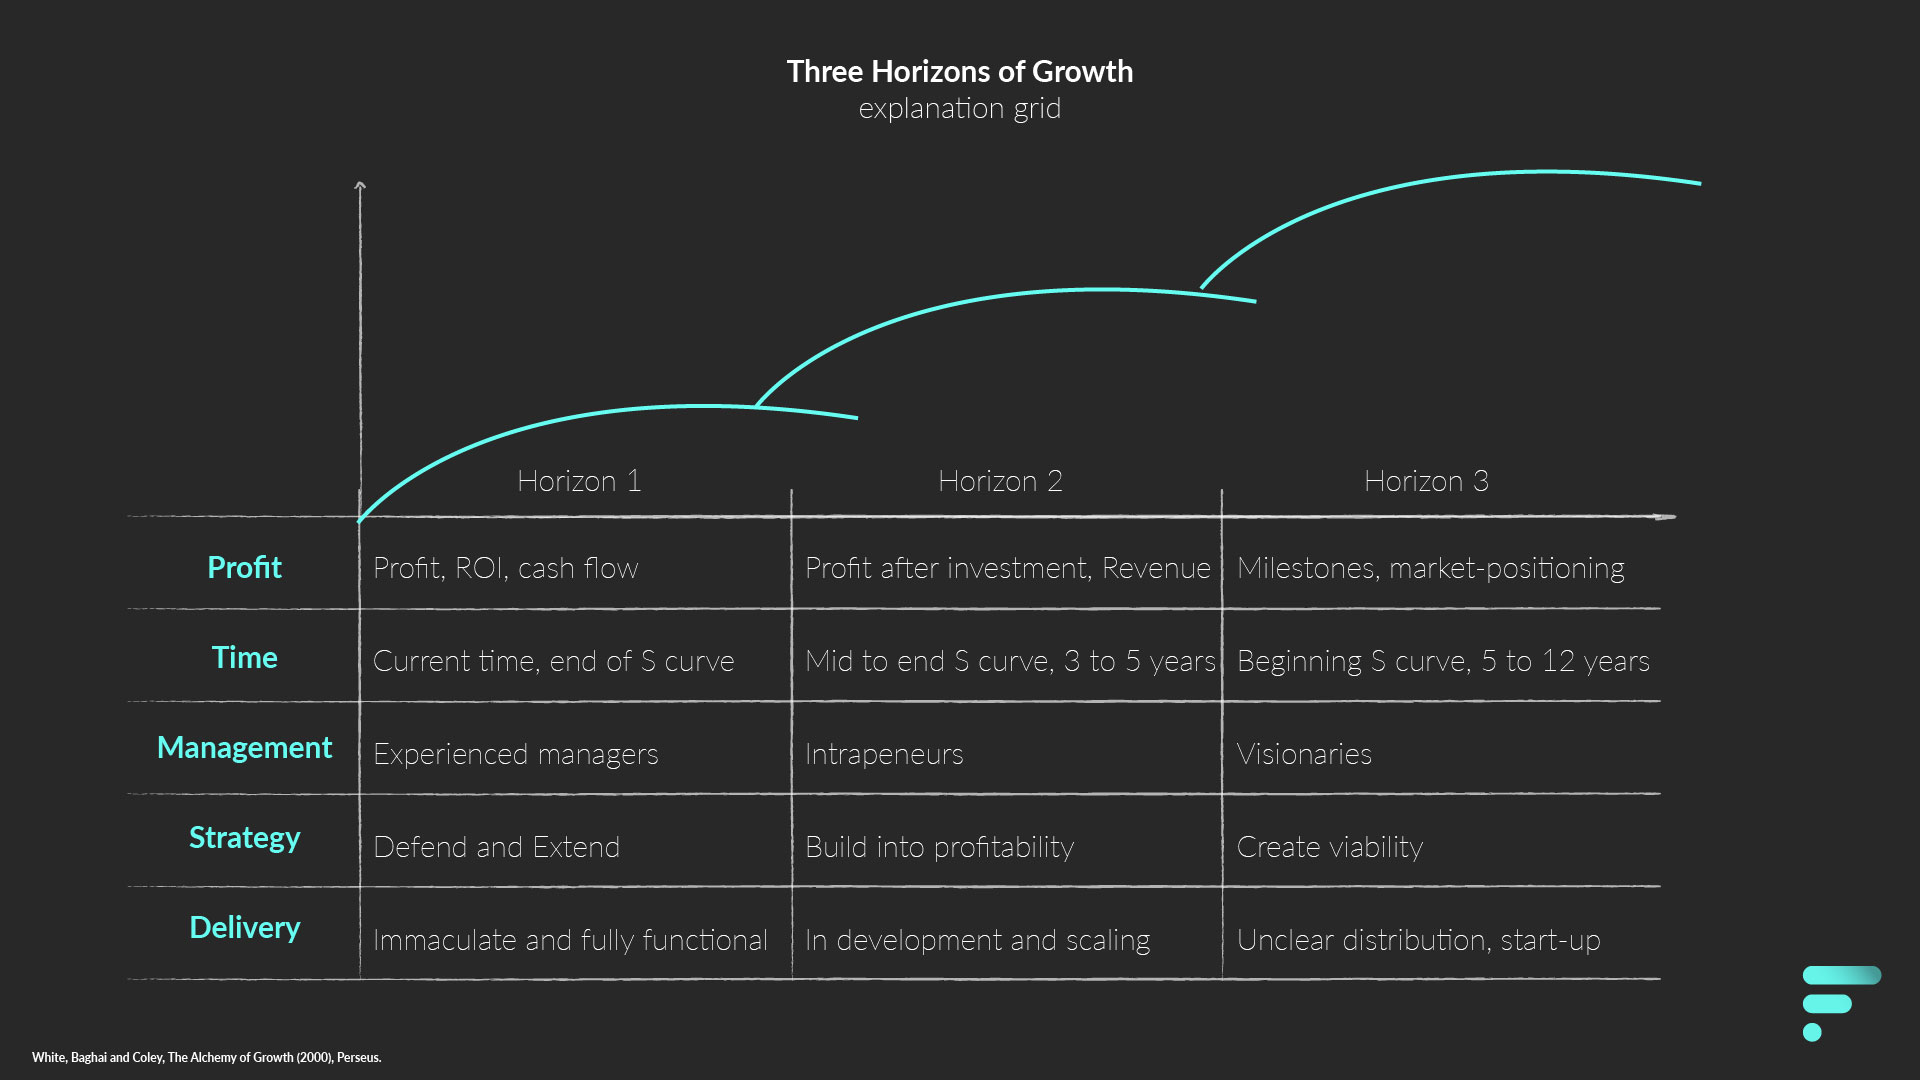 Explanation grid three horizons of growth